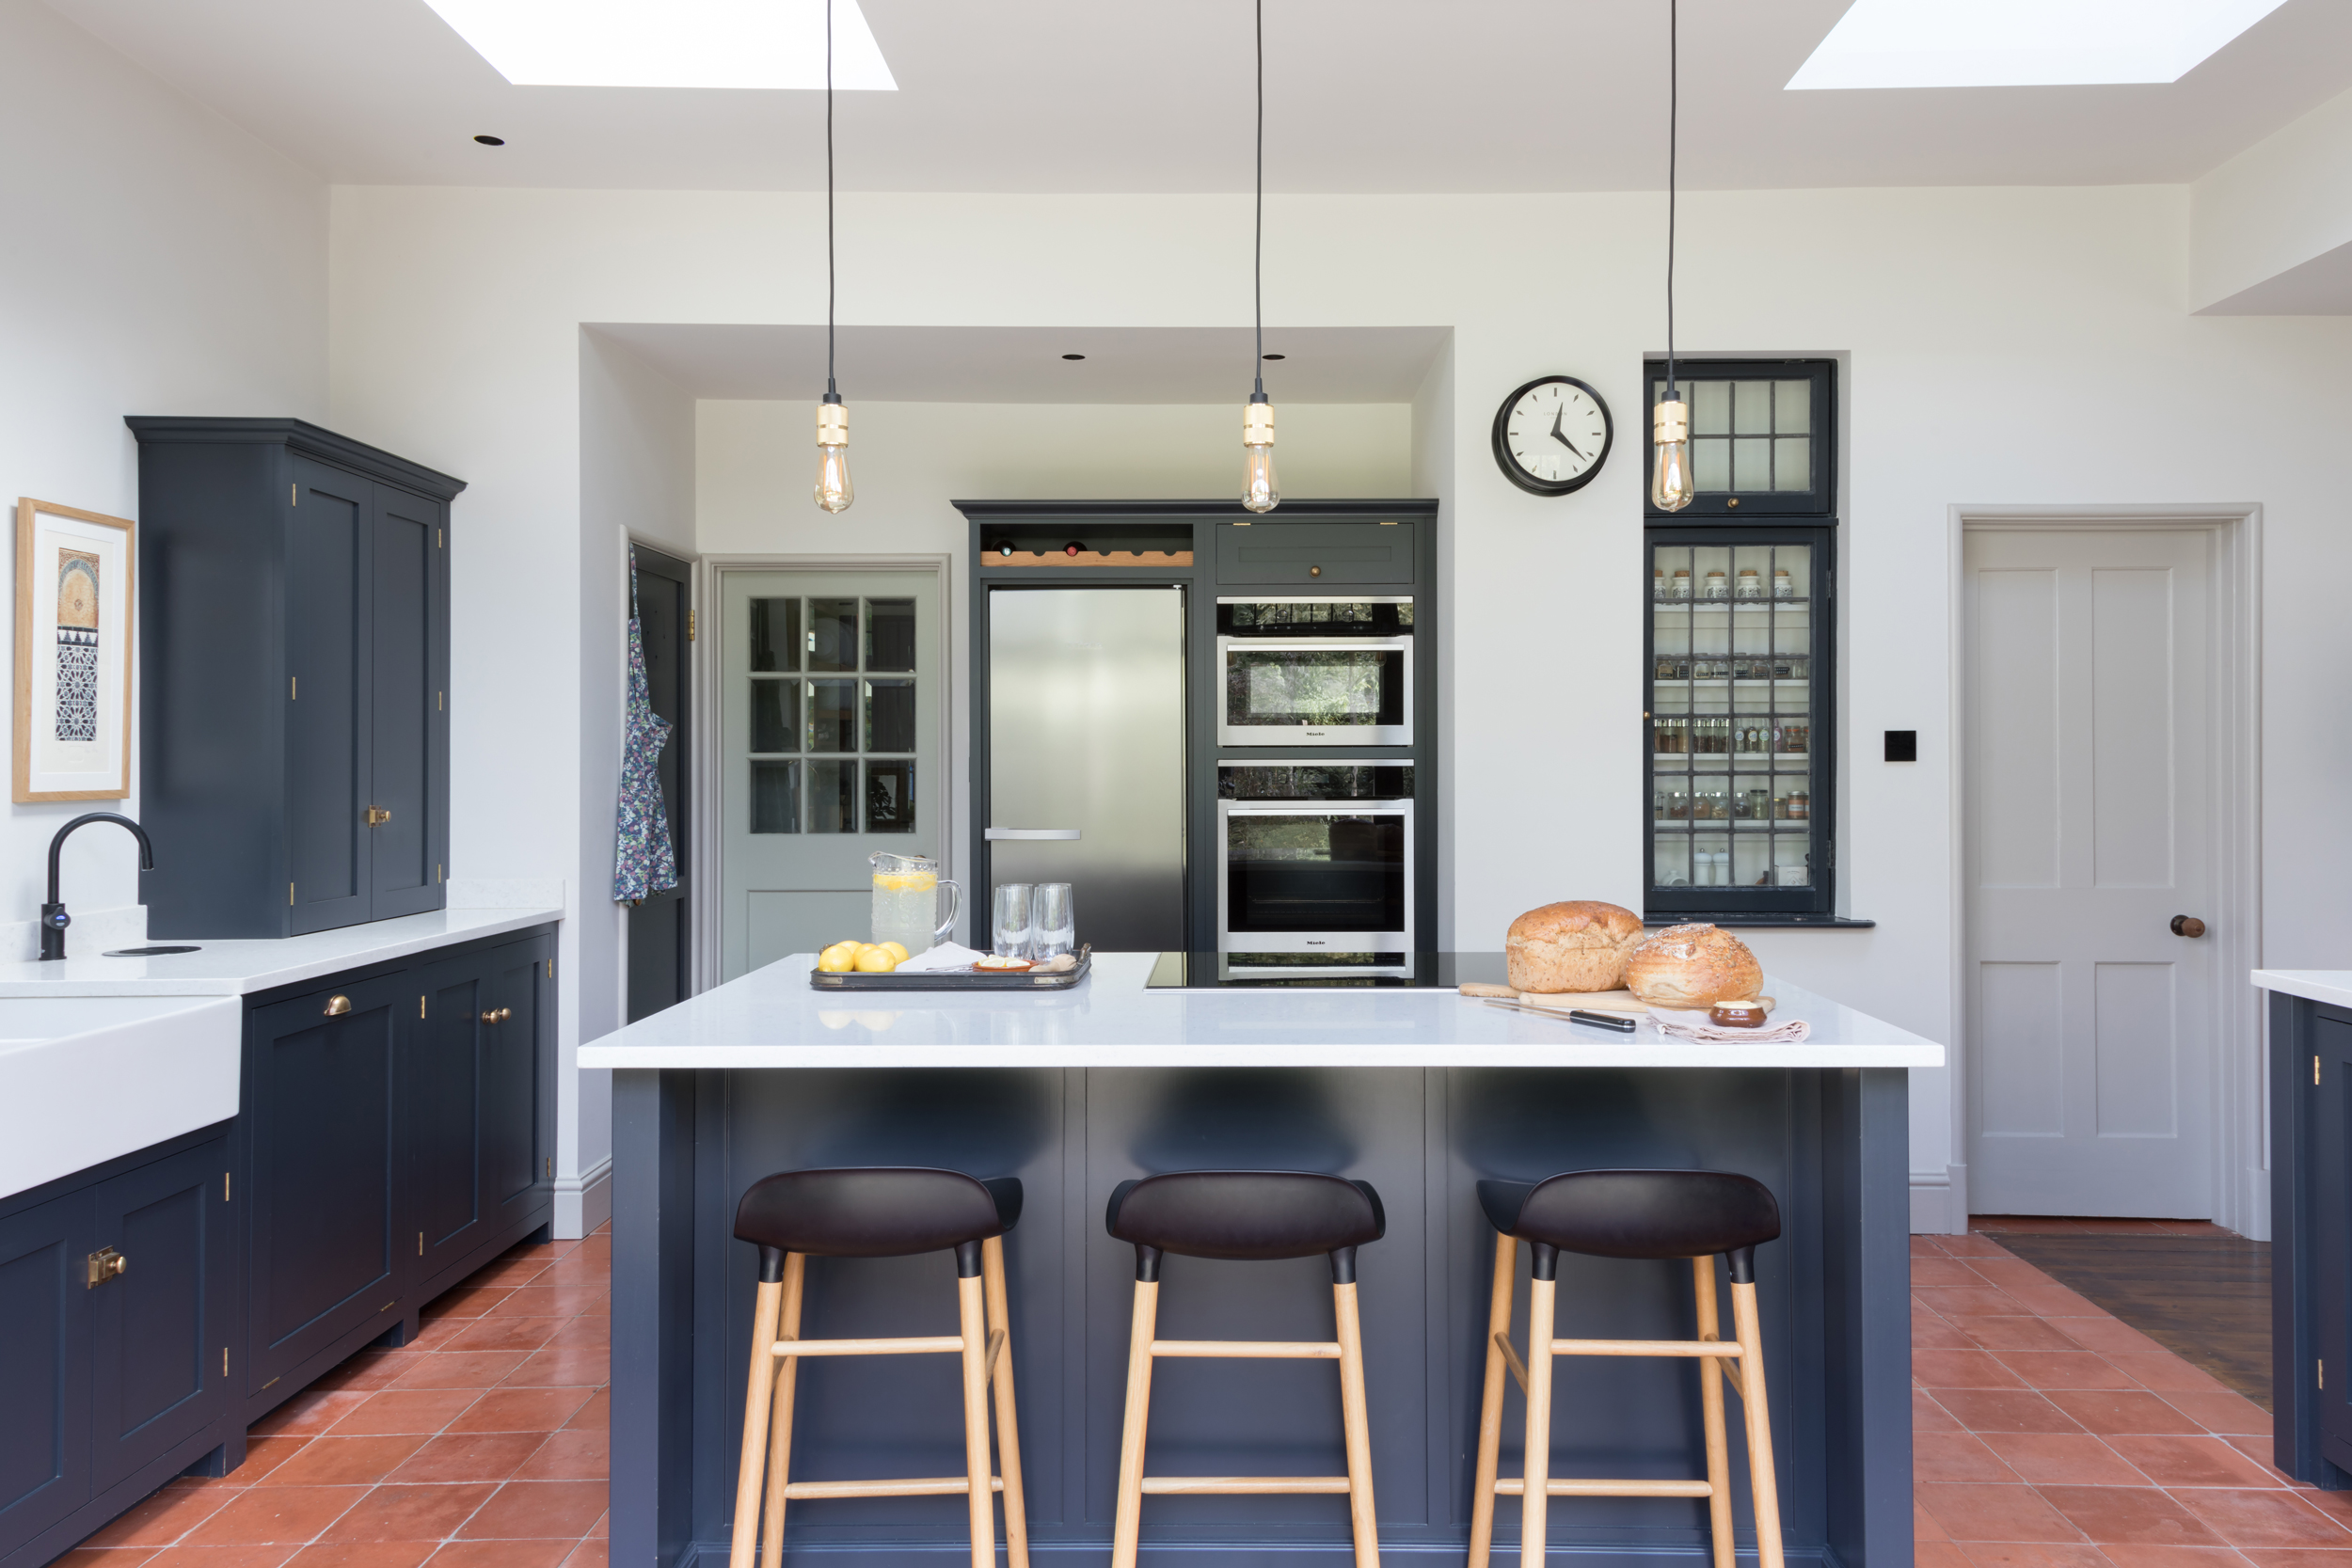 kitchen-design-with-bar-stools-aai.jpg